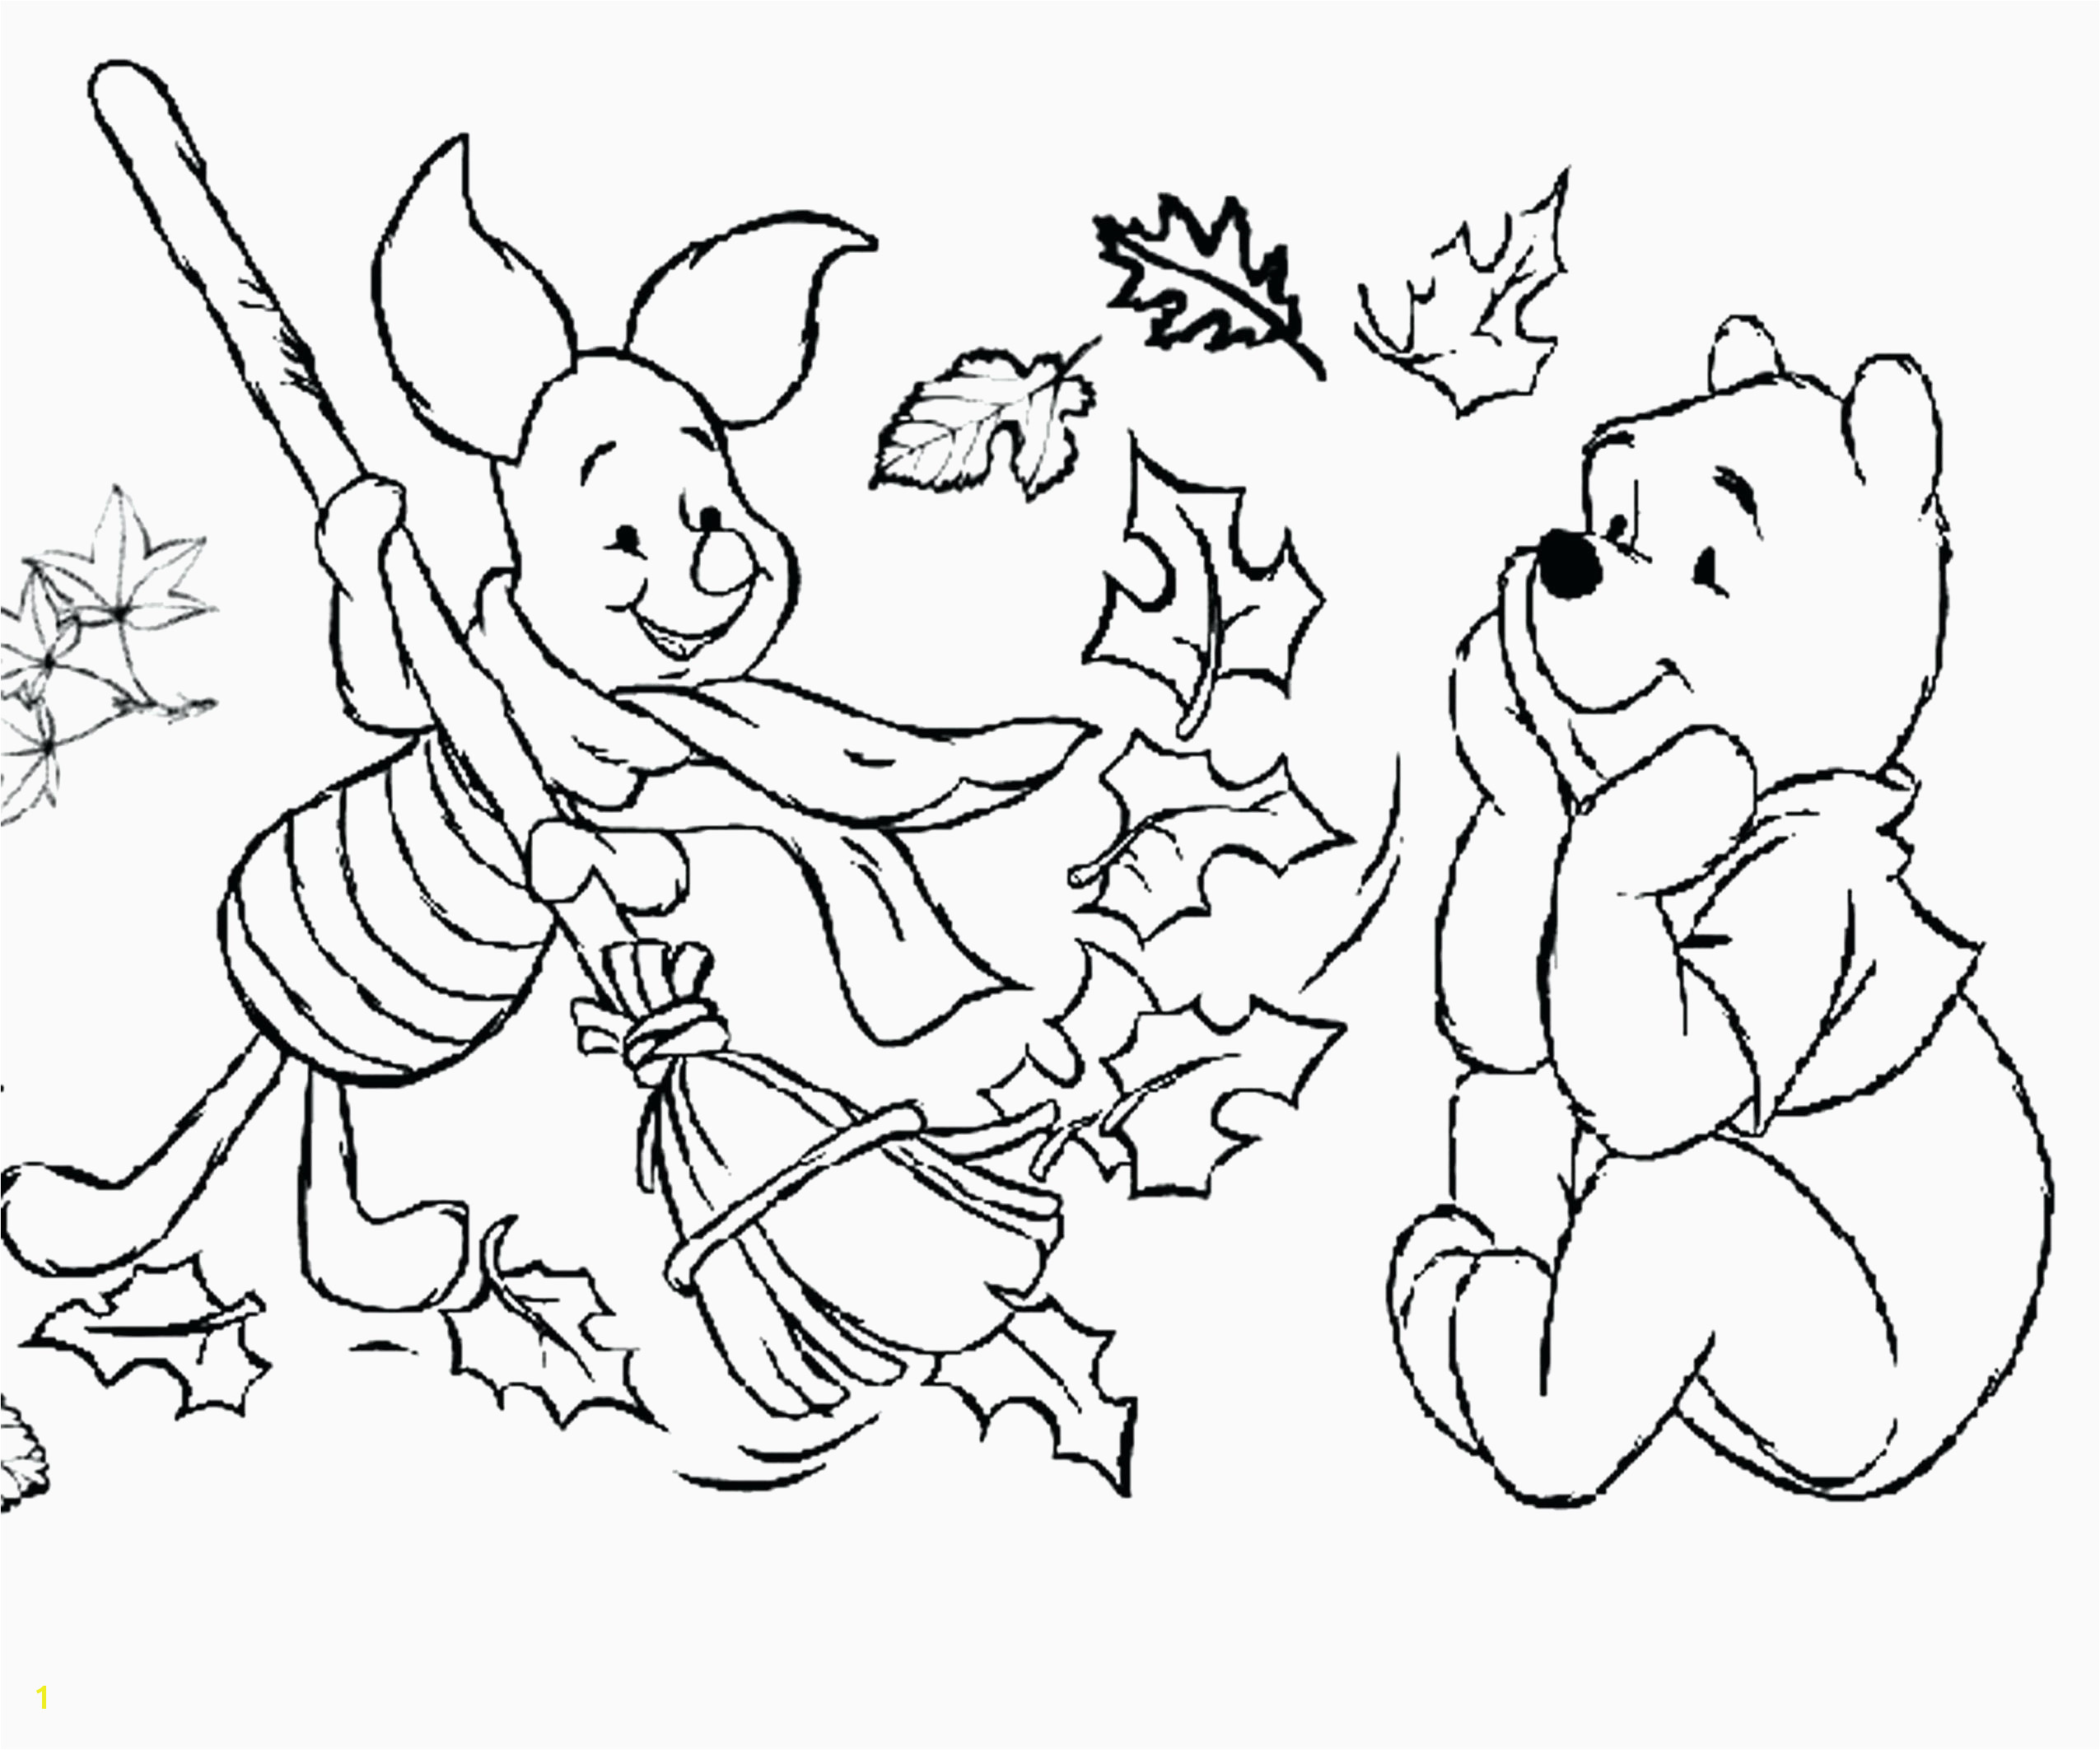 Drawing Coloring Pages Beautiful Cool Coloring Page Unique Witch Coloring Pages New Crayola Pages 0d